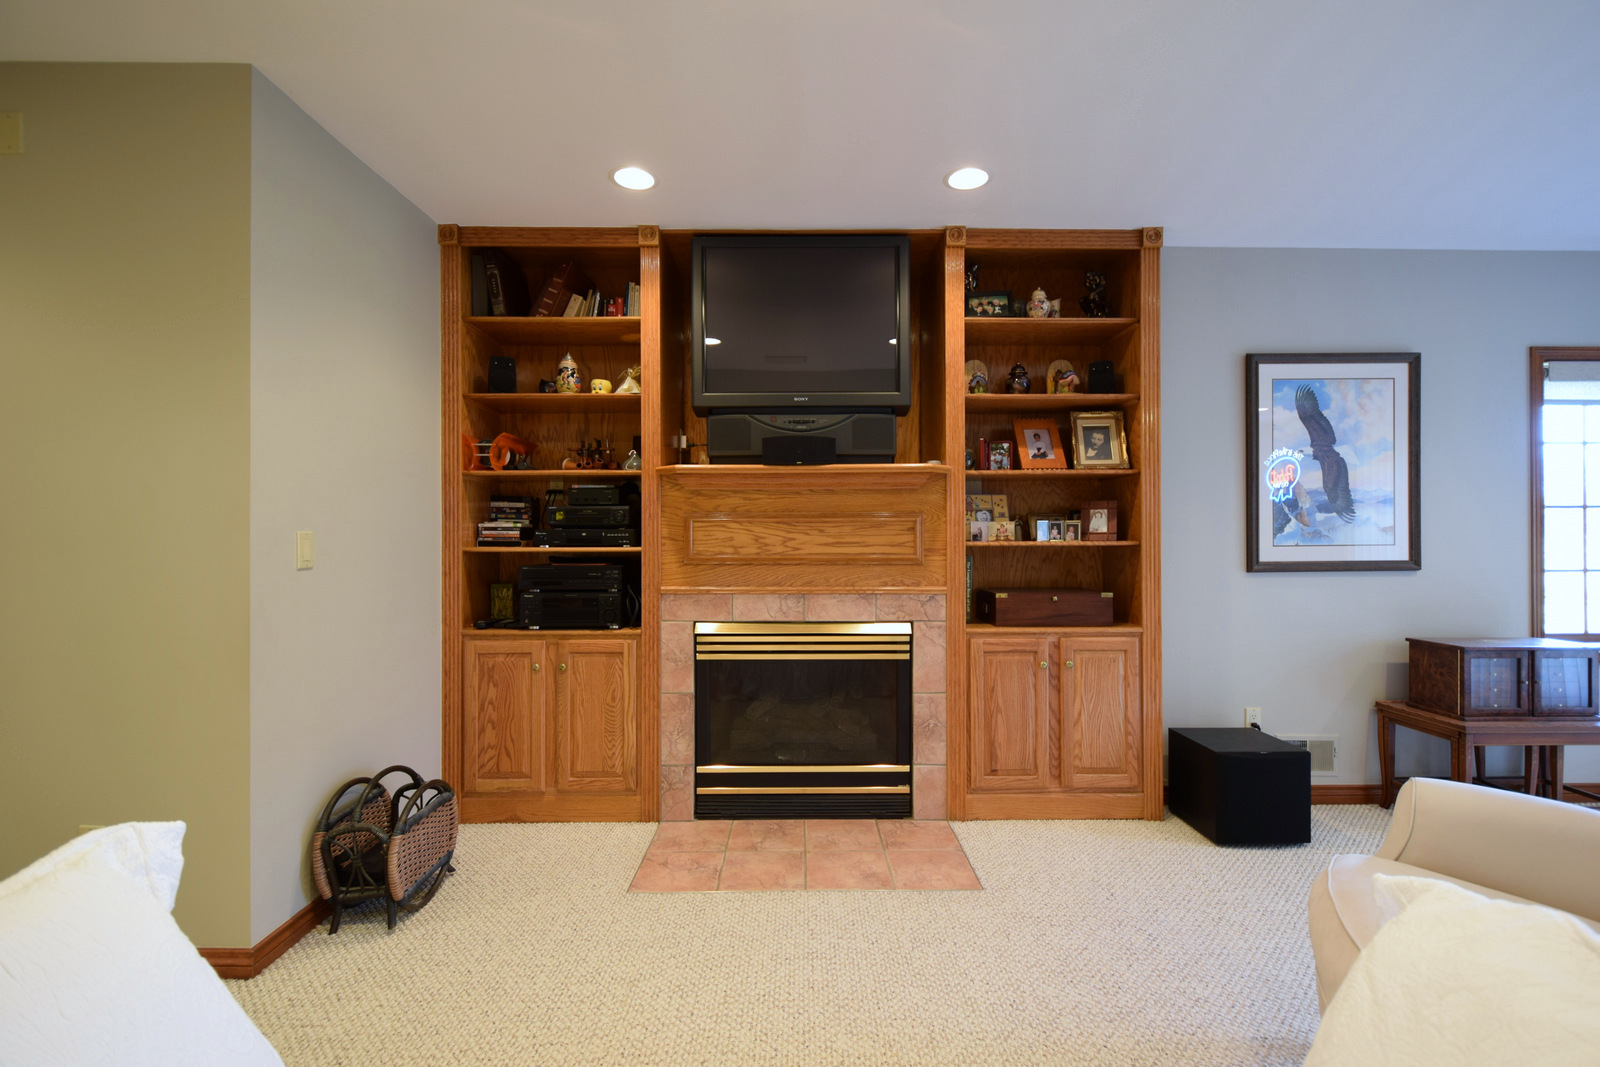 just sold 48007 ann arbor road plymouth u2013 4 bedroom cape cod w